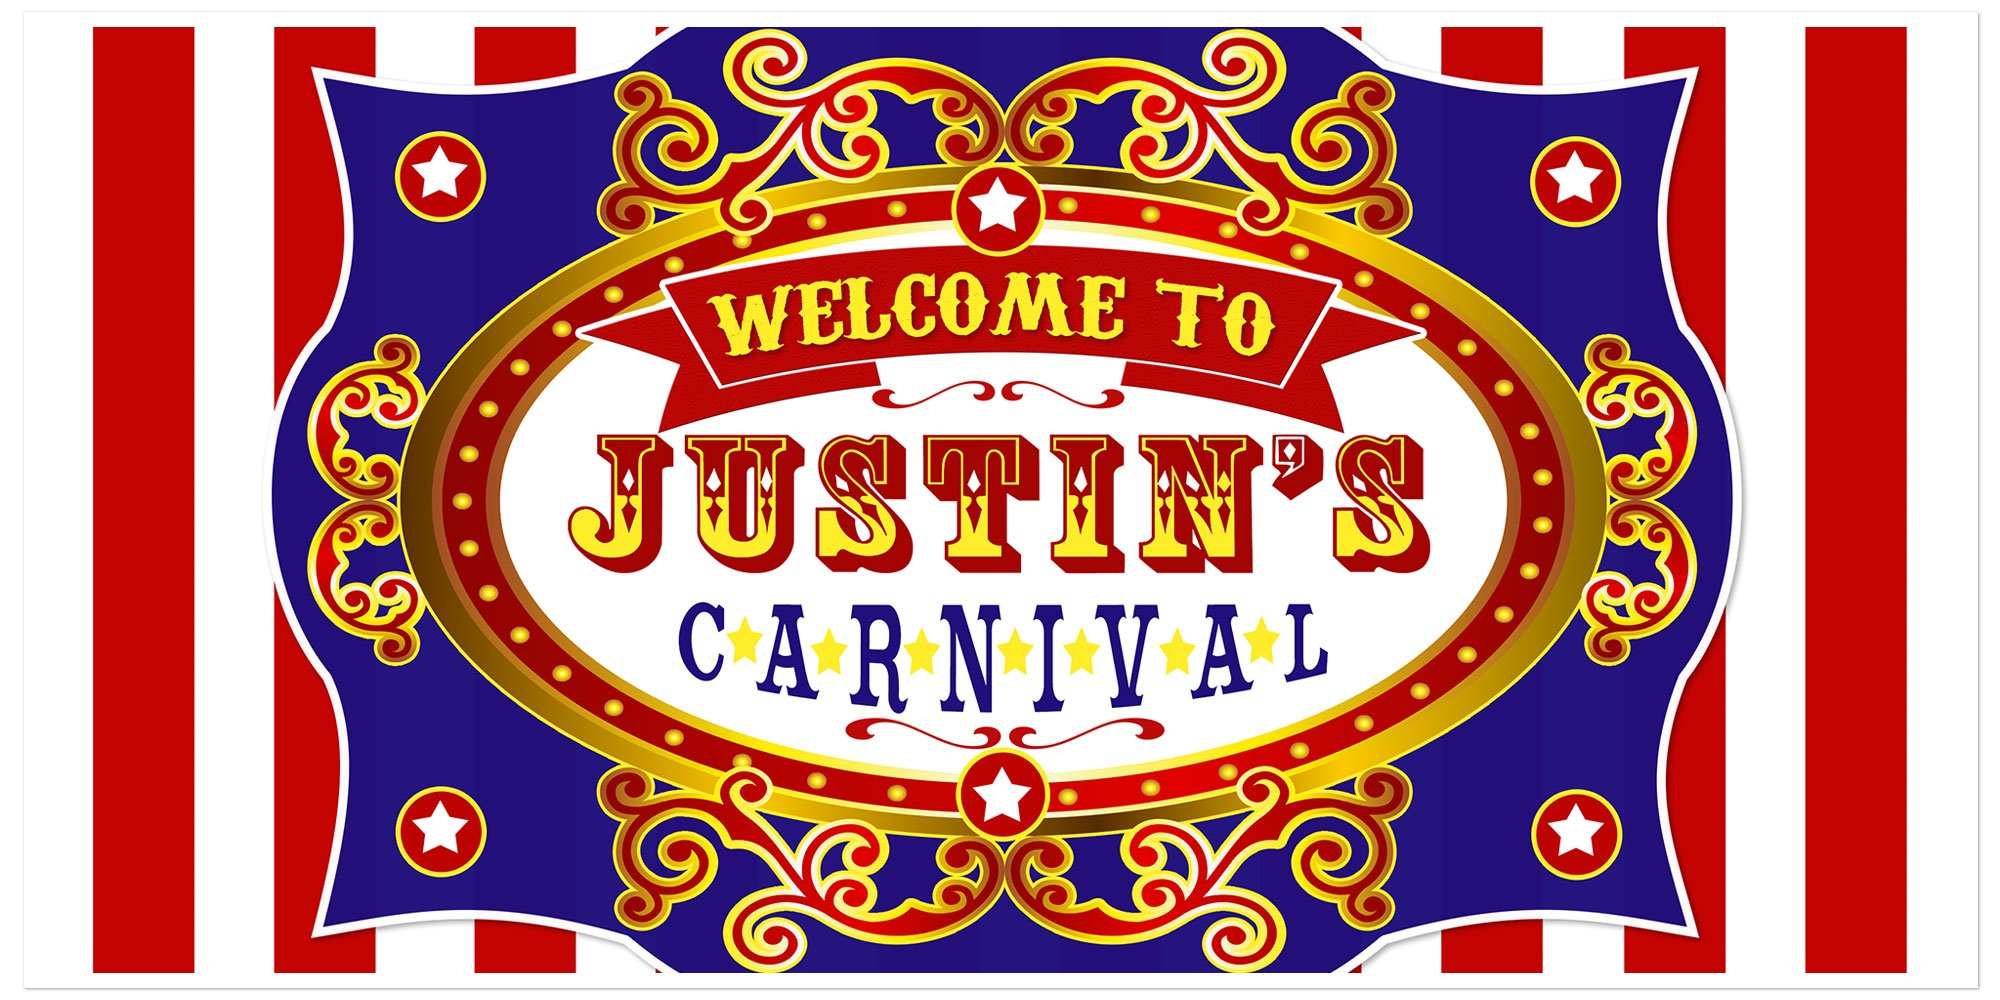 Carnival Birthday Banner Personalized Party Backdrop Decoration by Paper Blast